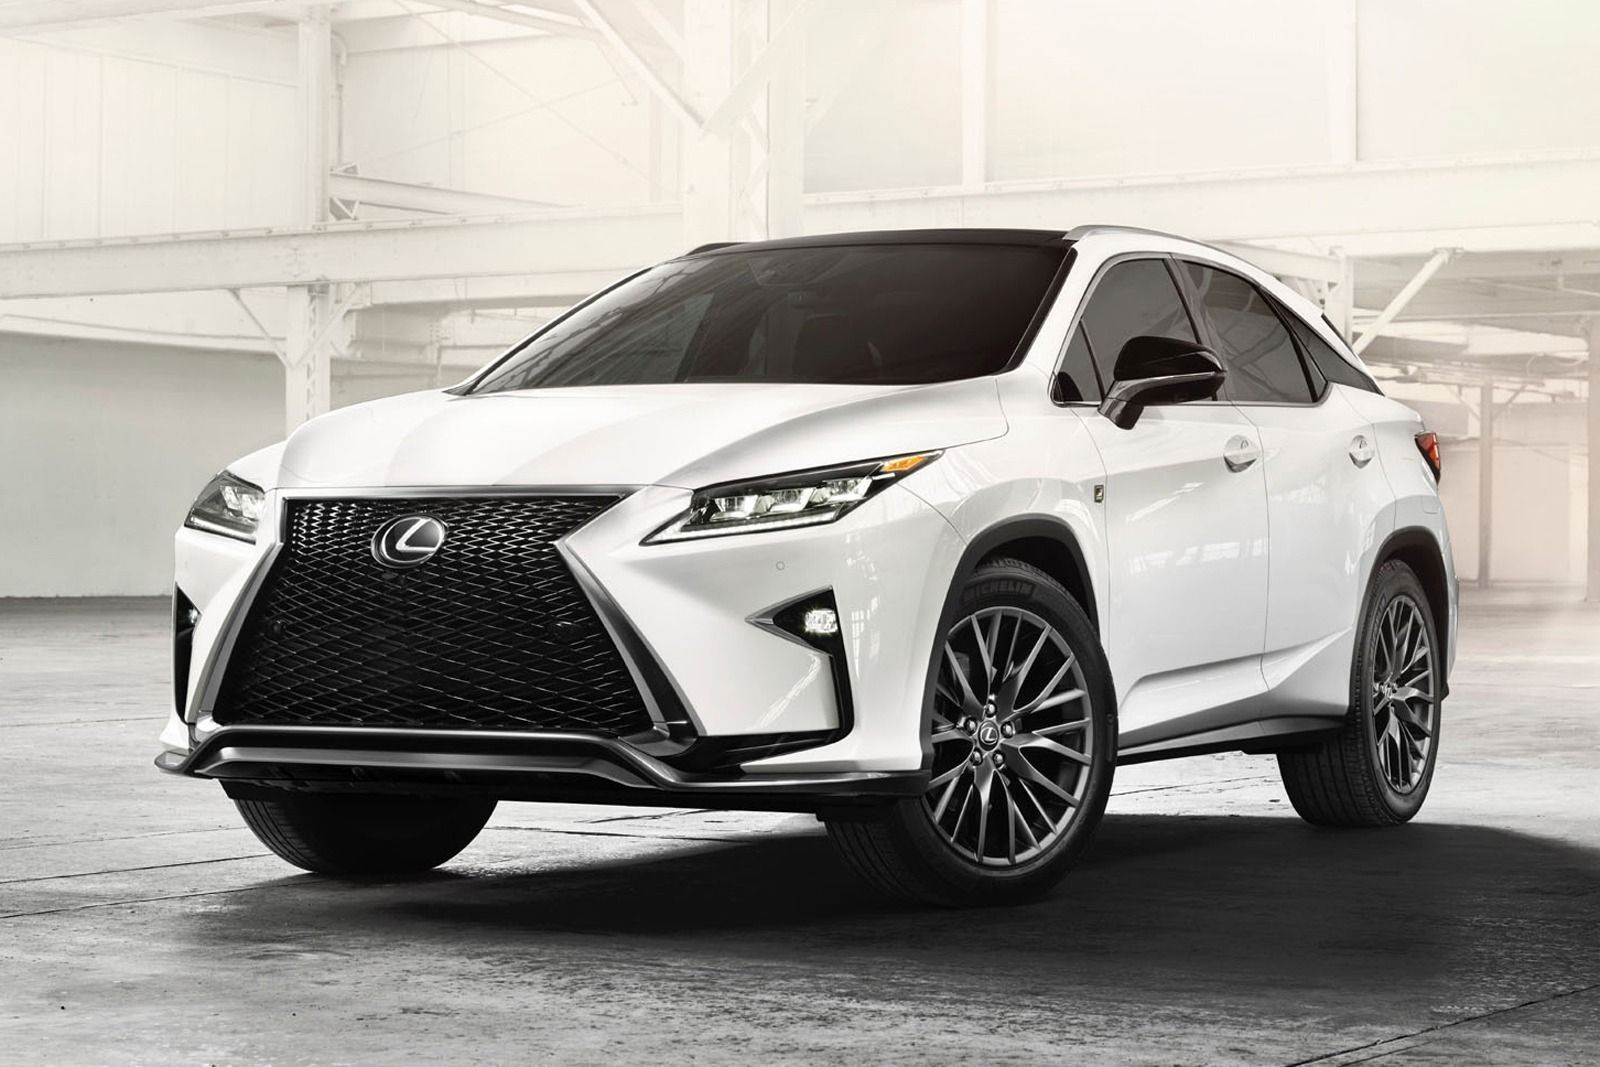 2020 Lexus Rx 350 Engine Design Price And Release Rumors Car